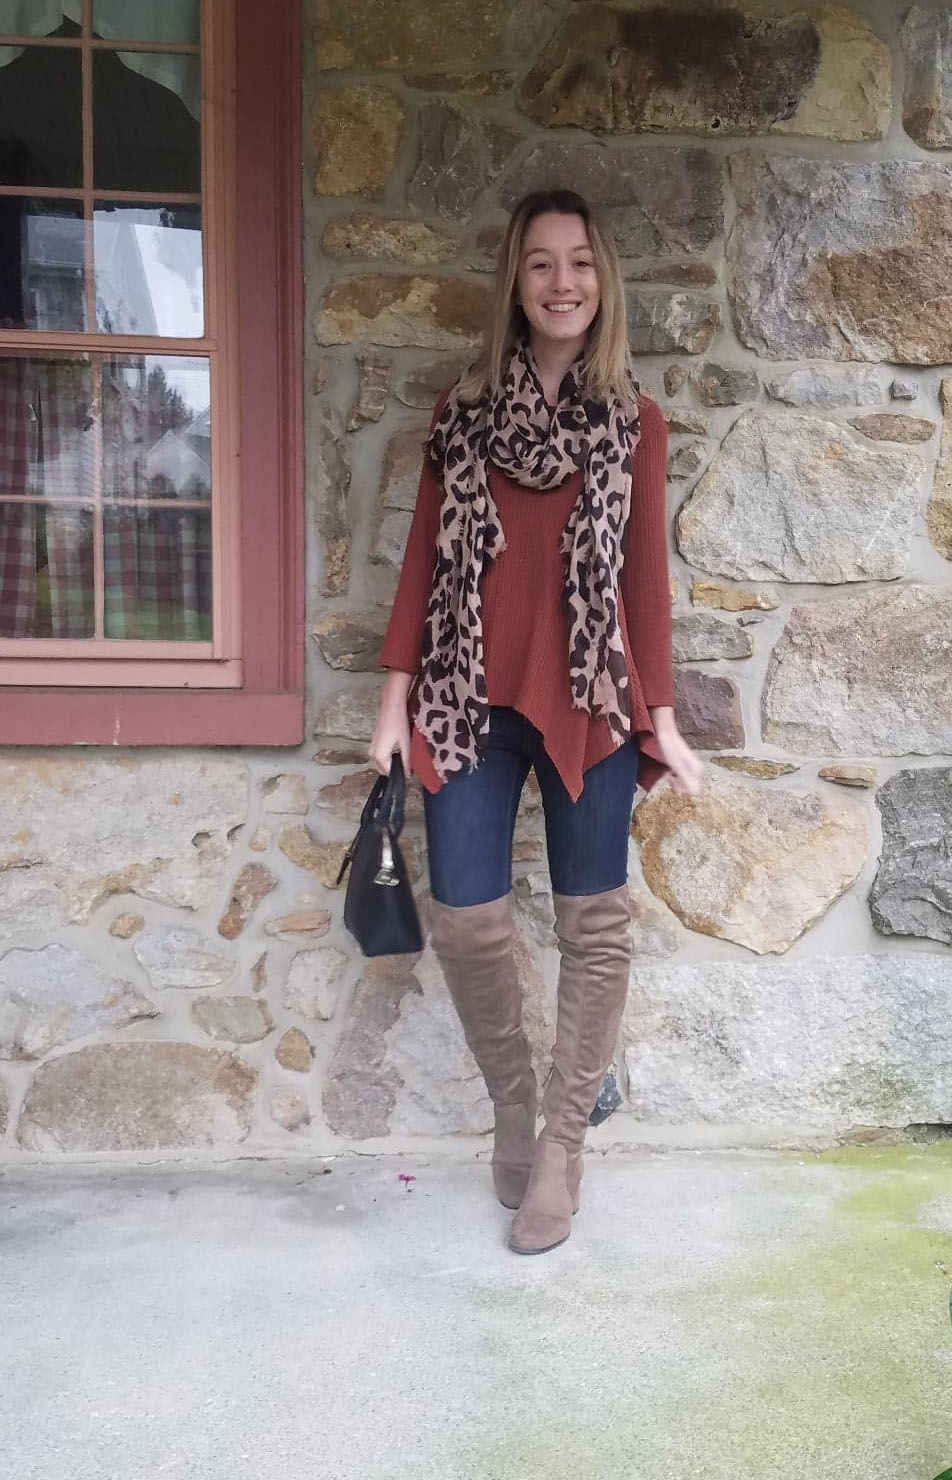 Trends: 5 ways to wear leopard print this fall